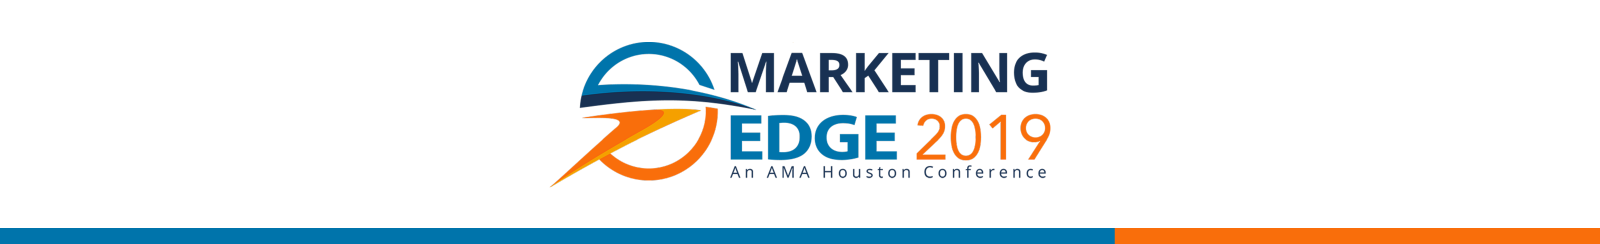 Marketing Edge 2019